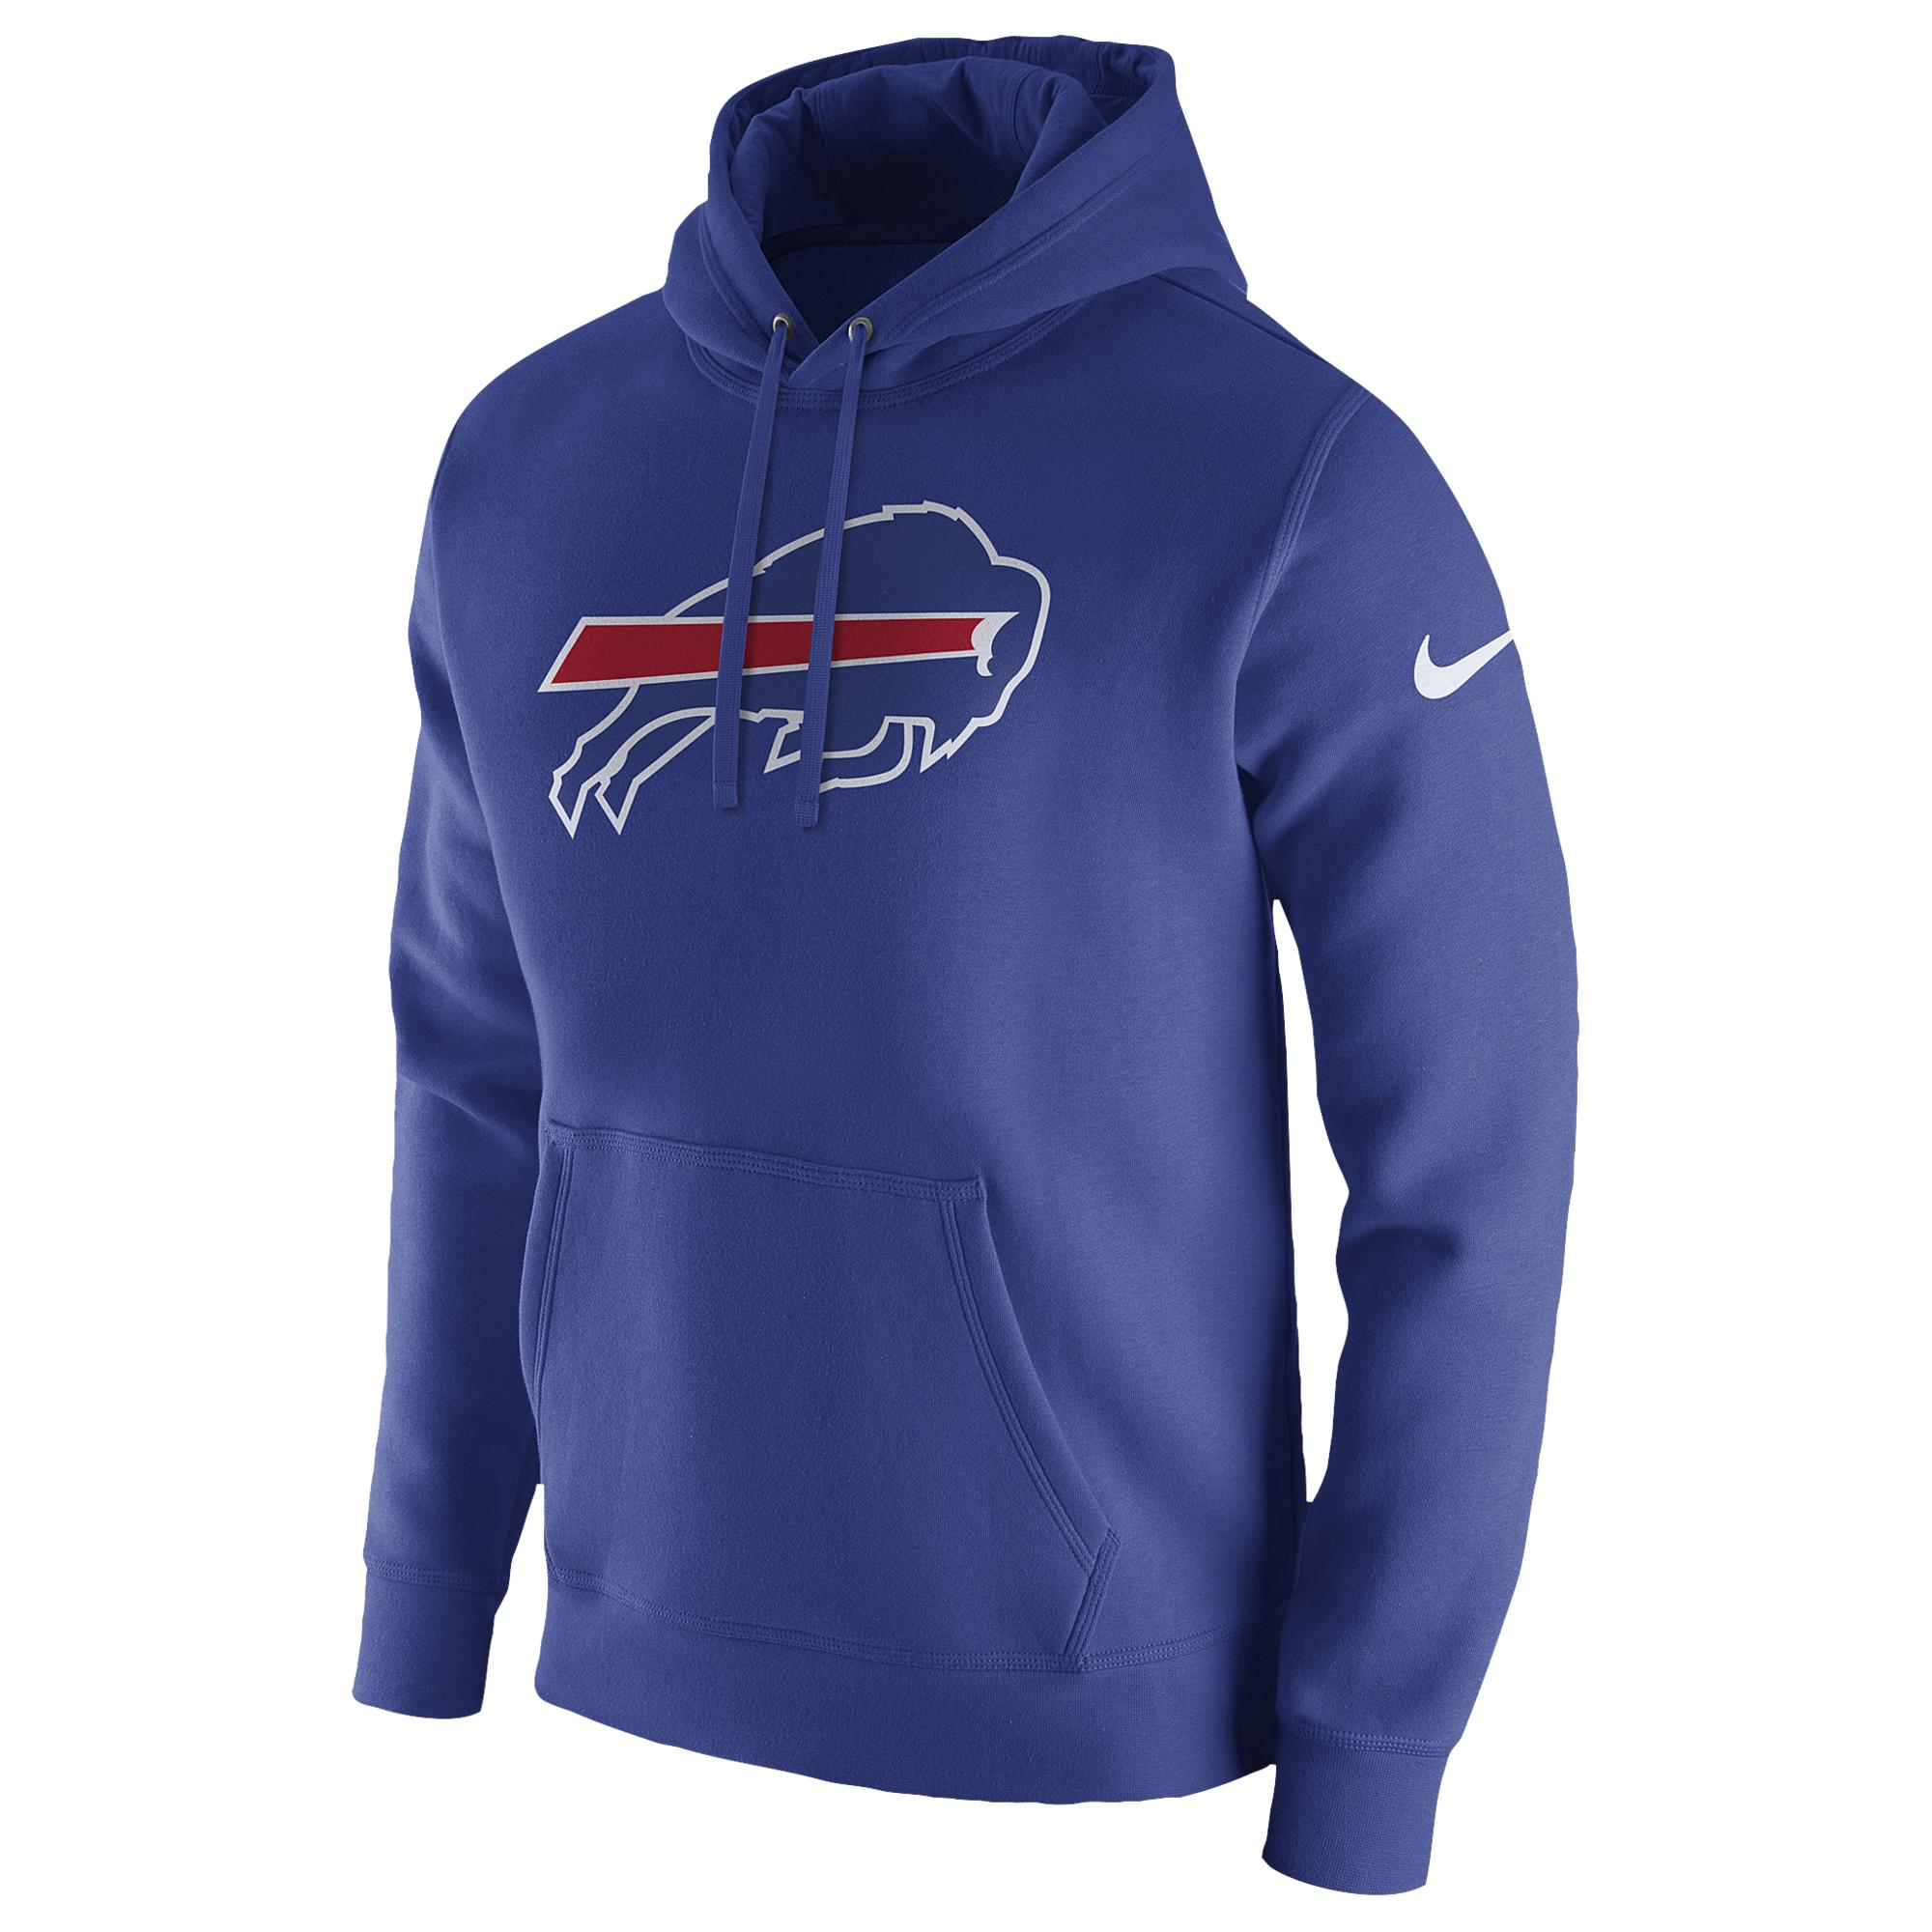 reputable site ec129 854d2 Nike Buffalo Bills Nfl Pullover Fleece Club Hoodie in Blue ...